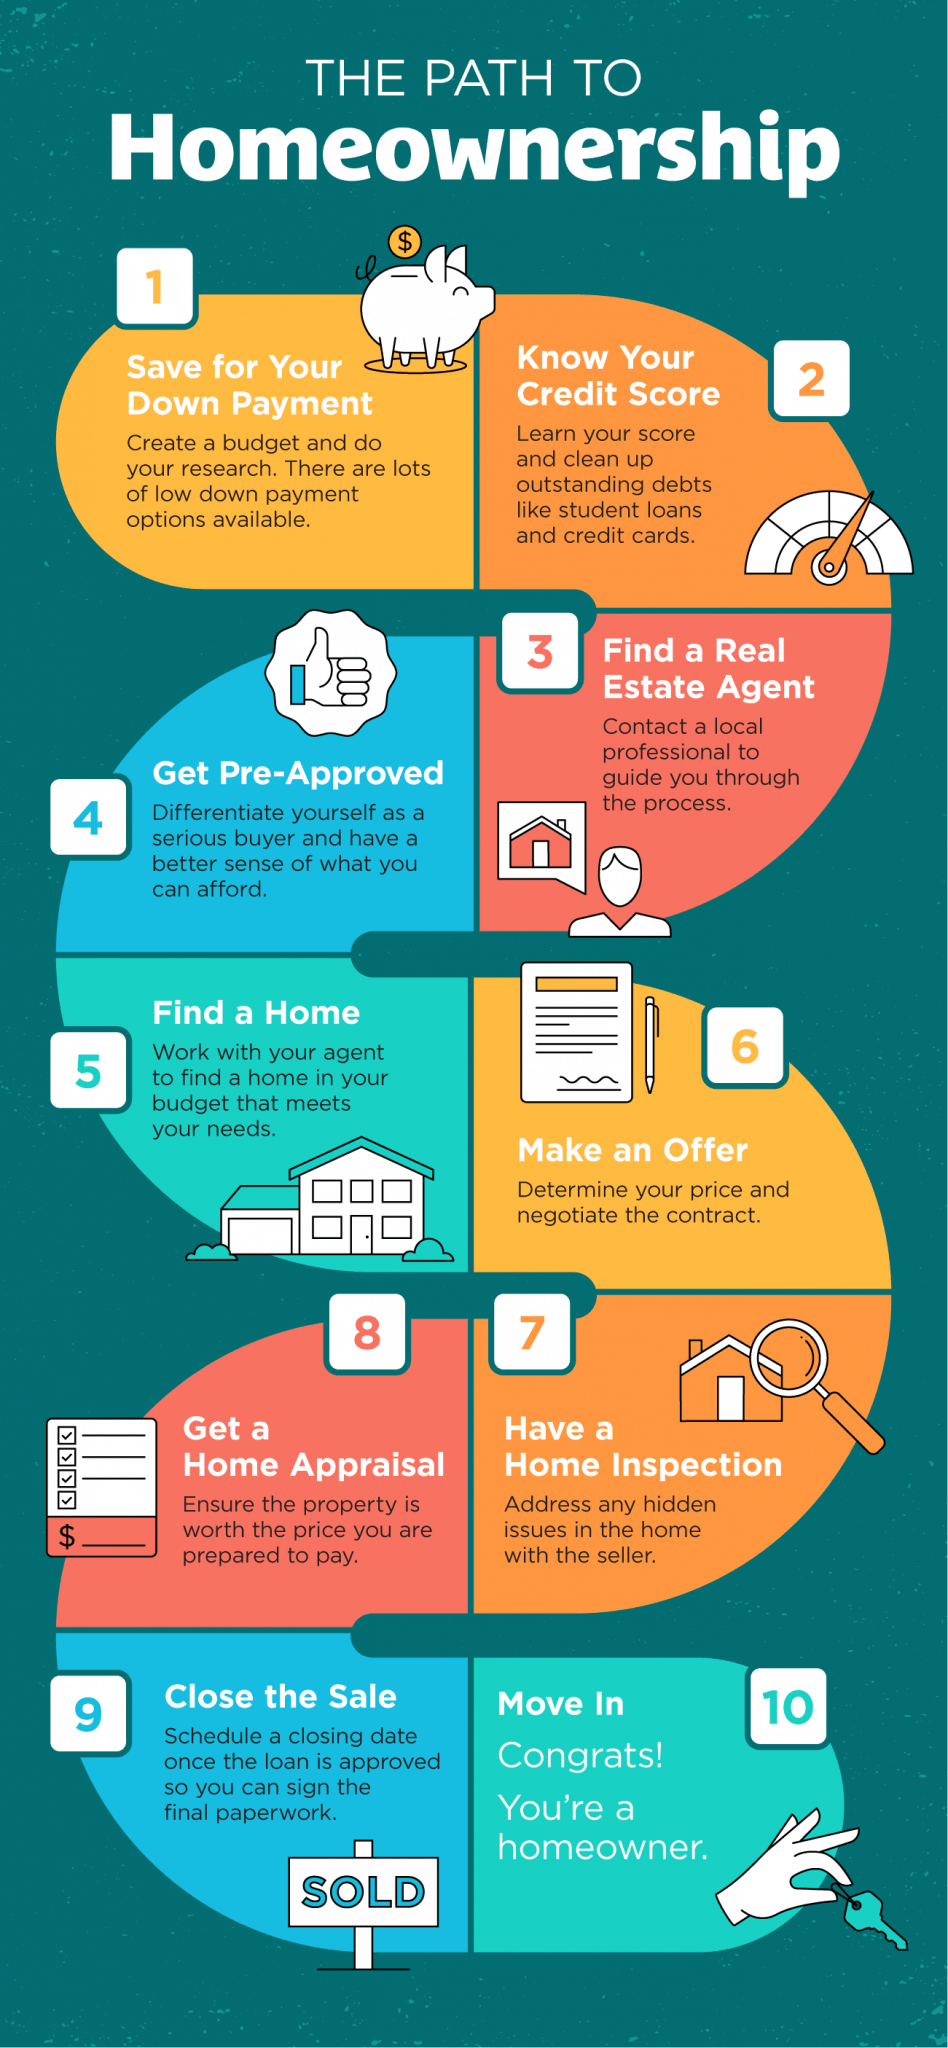 The Path to Homeownership [INFOGRAPHIC] 20201204-MEM-948x2048